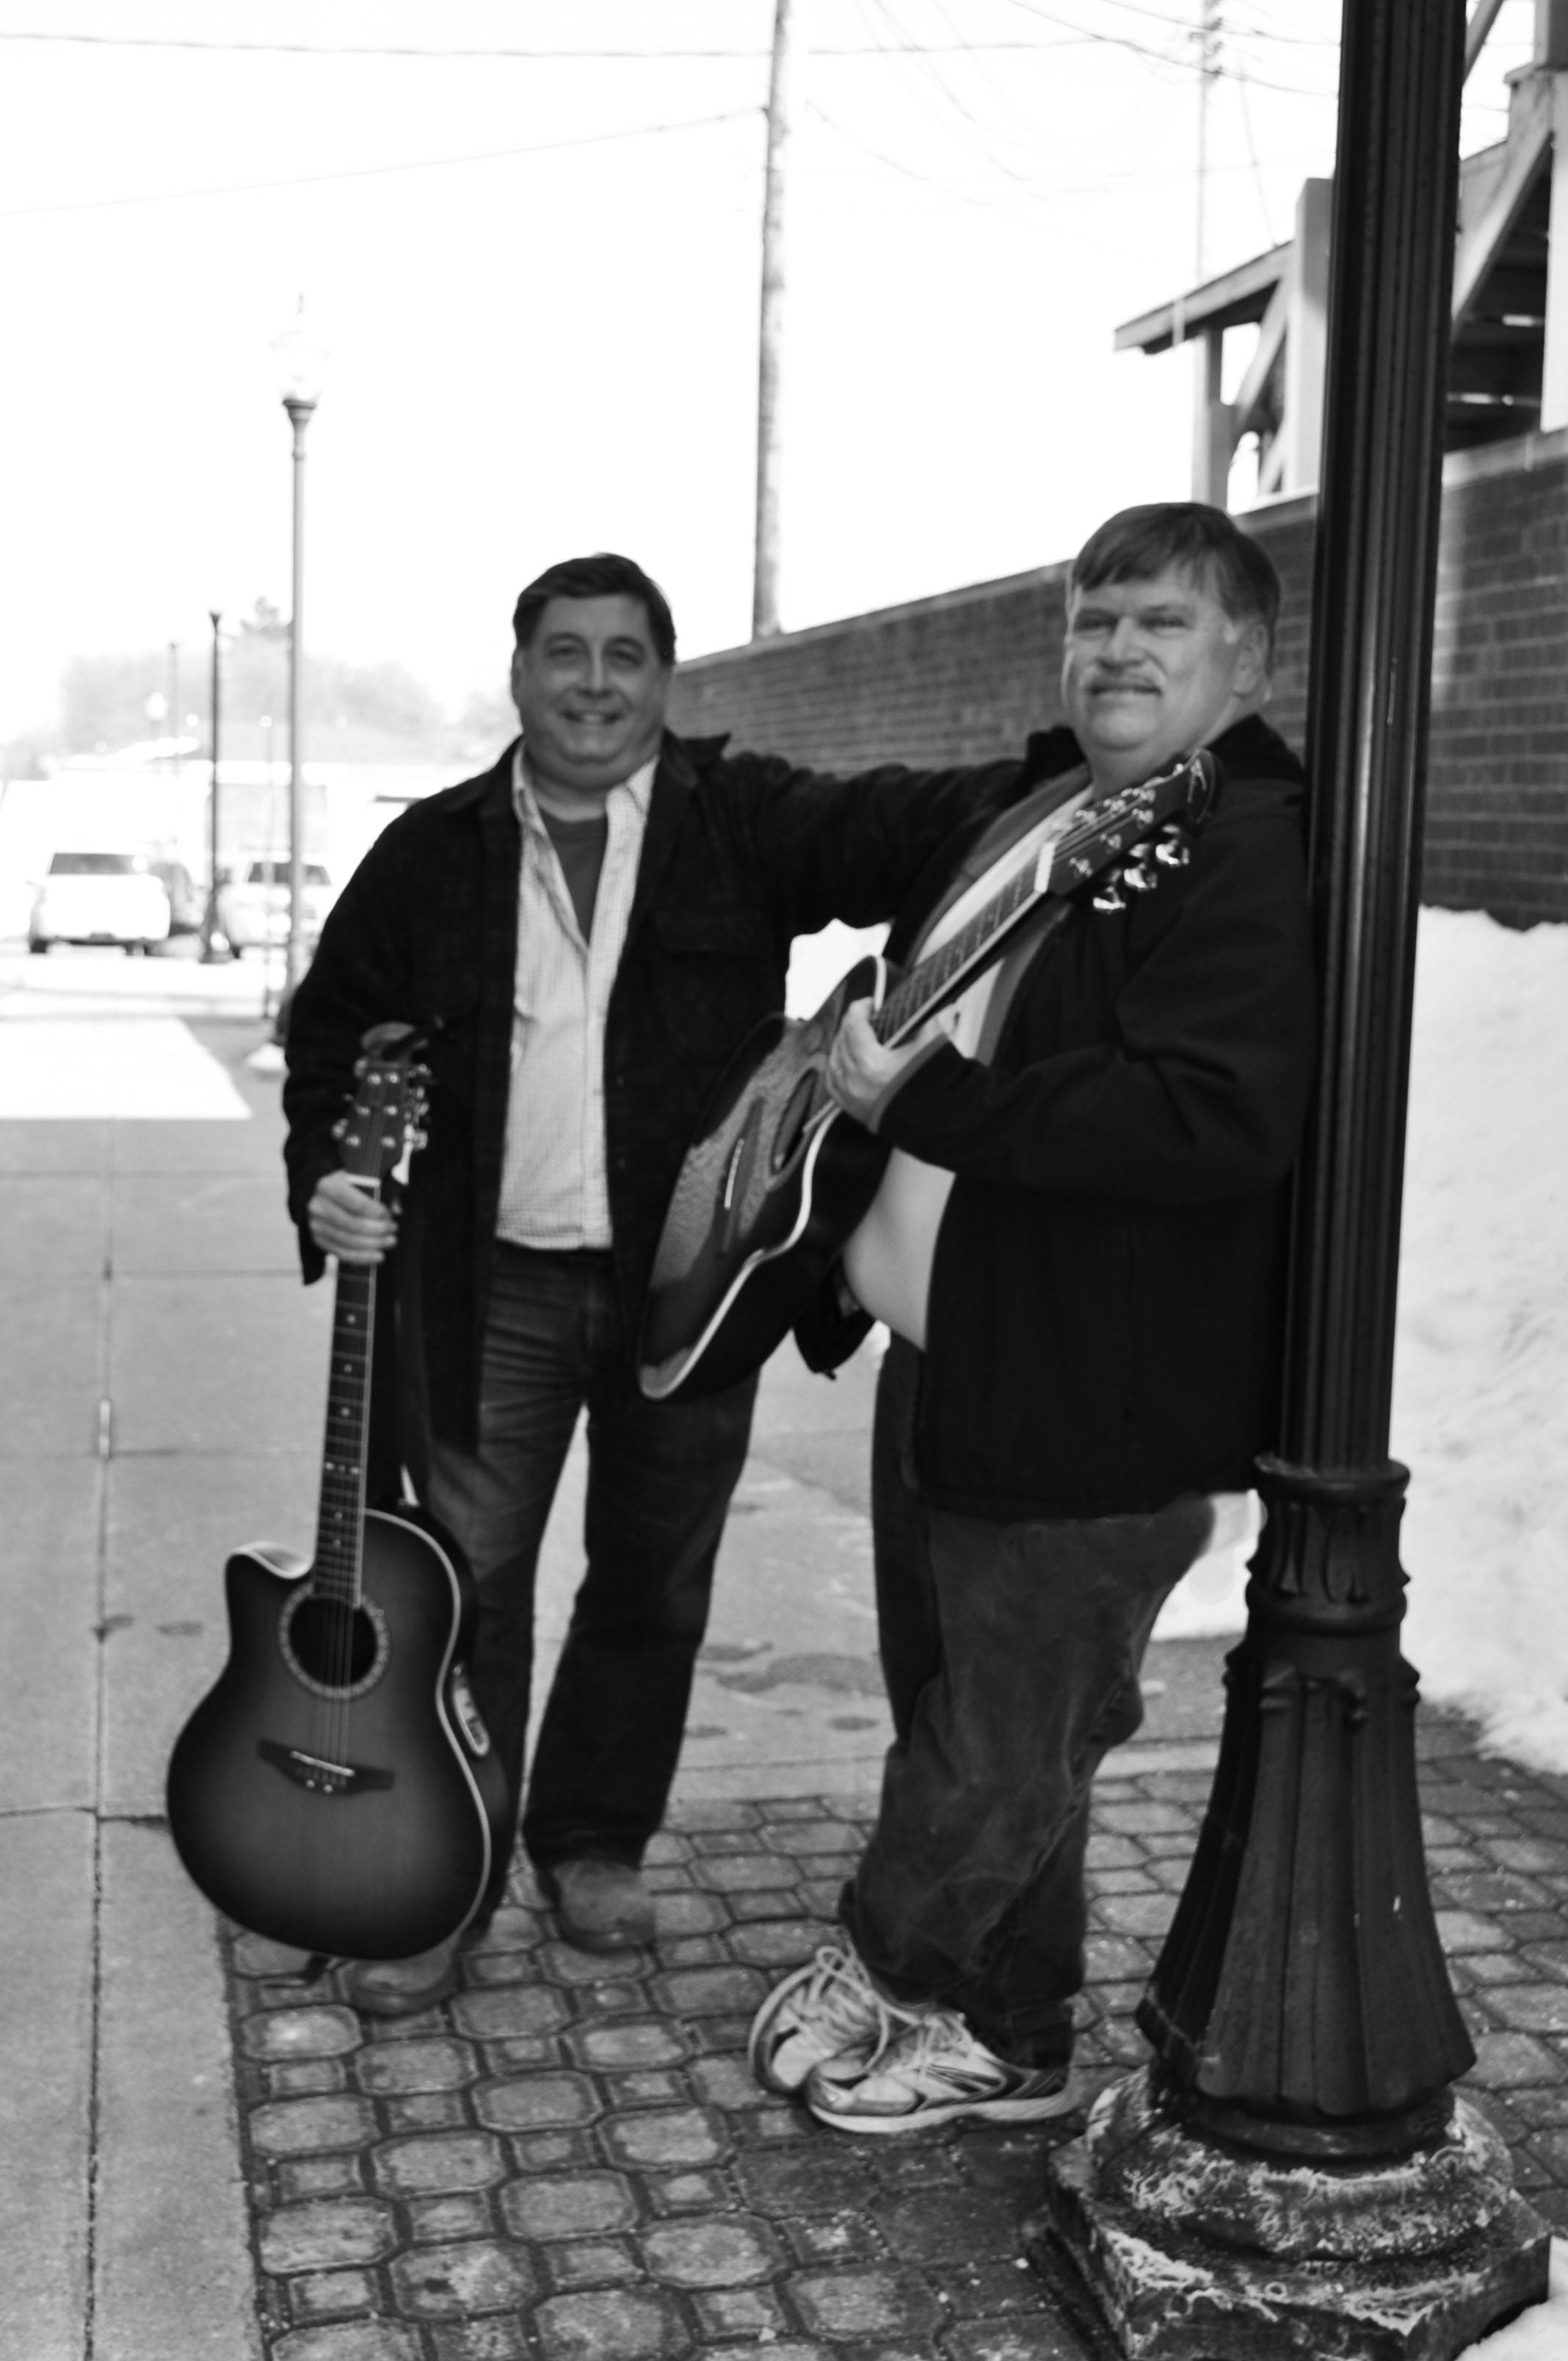 Frank and Steve (Frank Guzzo-left Steve Campbell-right)in Concert April 12, 7 p.m. at SummitView Christian Church, 695 Illinois Blvd, Hoffman Estates.Photography by Jamie (Jamie Morrow-Schoff)